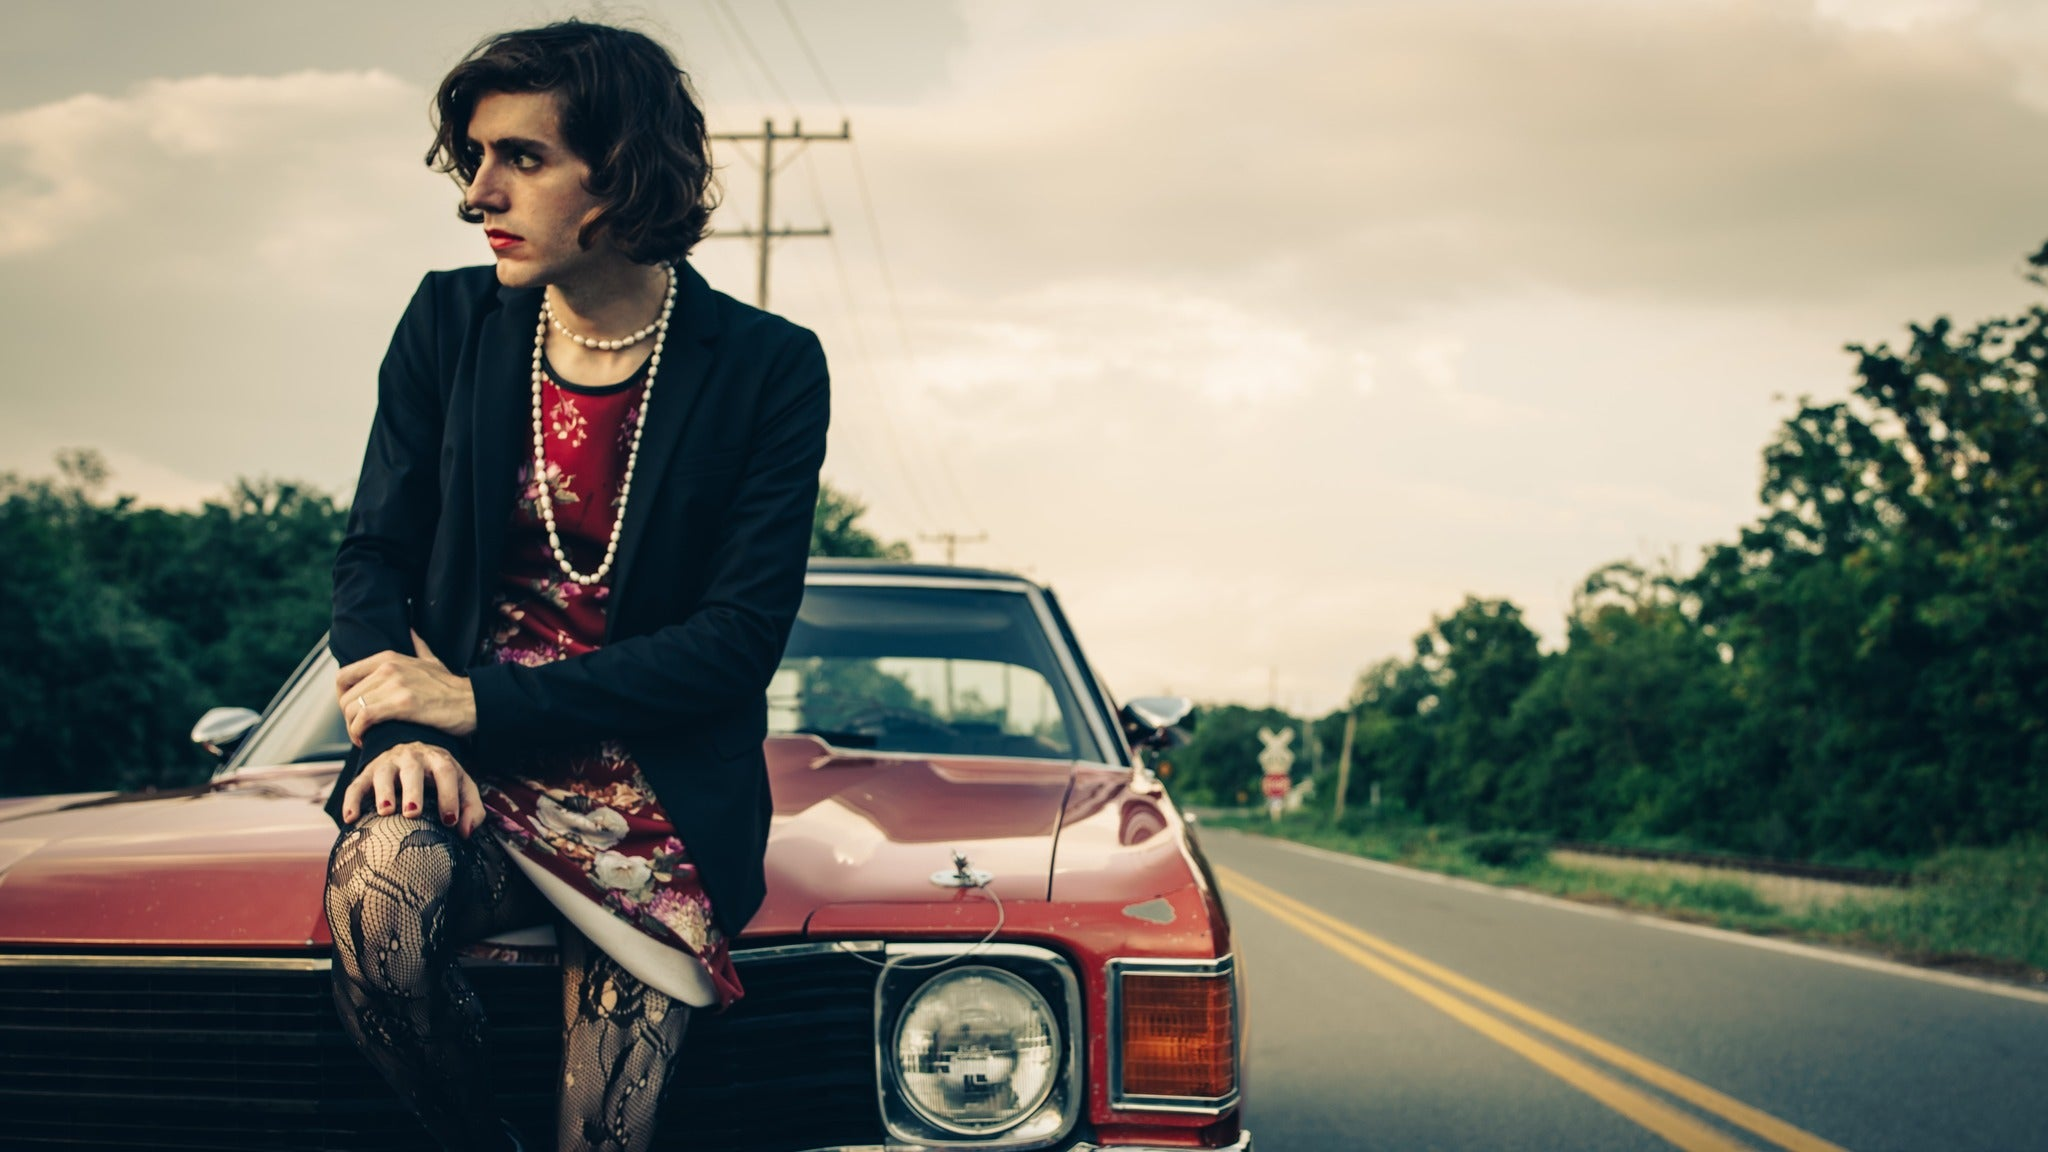 Ezra Furman at Lowbrow Palace